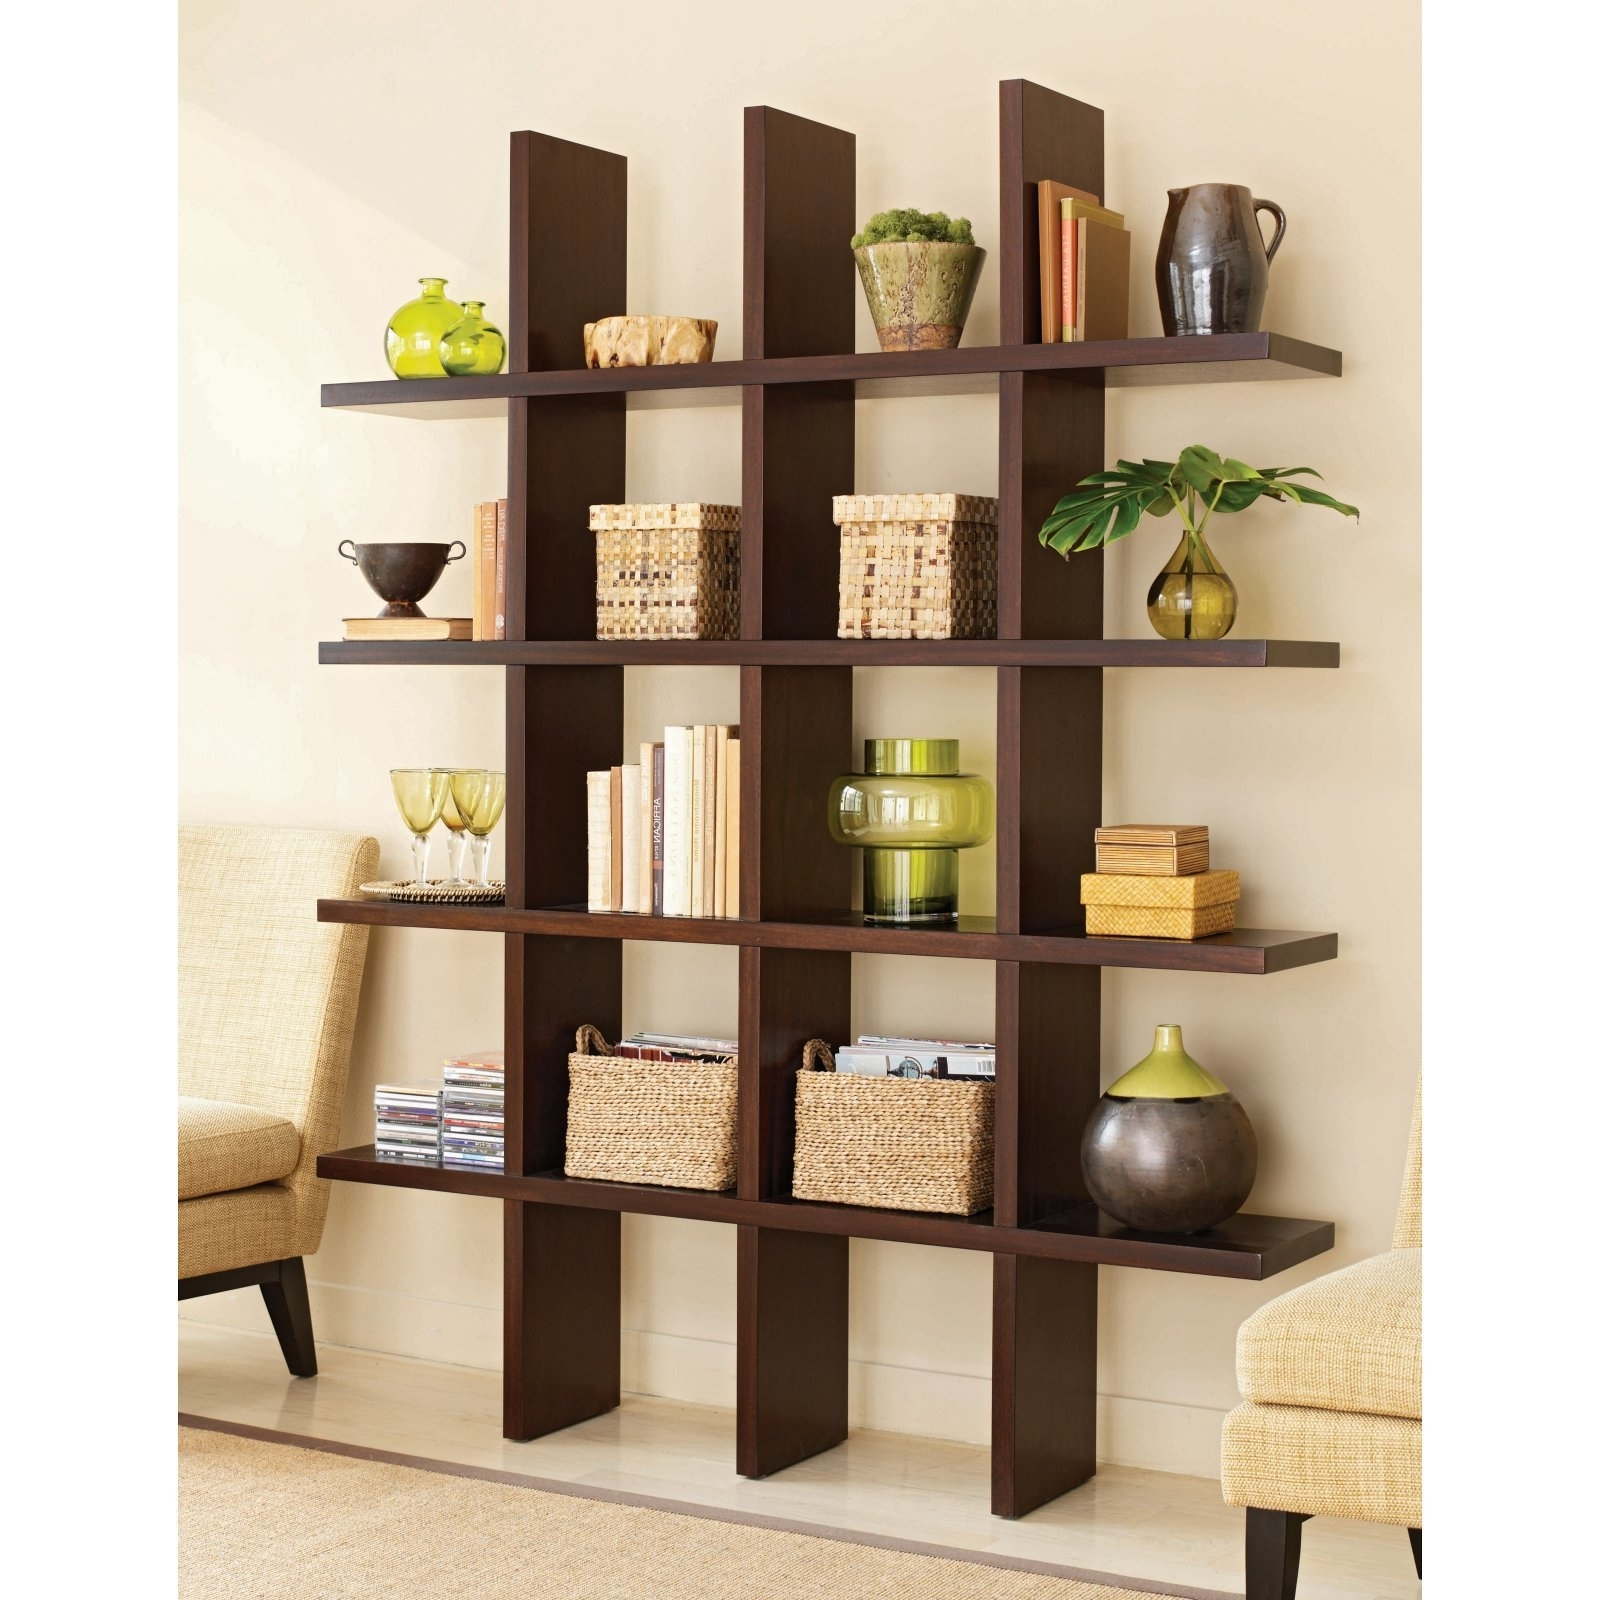 Image Result For Floating Book Shelves In Home Office Office Throughout Widely Used Bookshelves Designs For Home (Gallery 5 of 15)